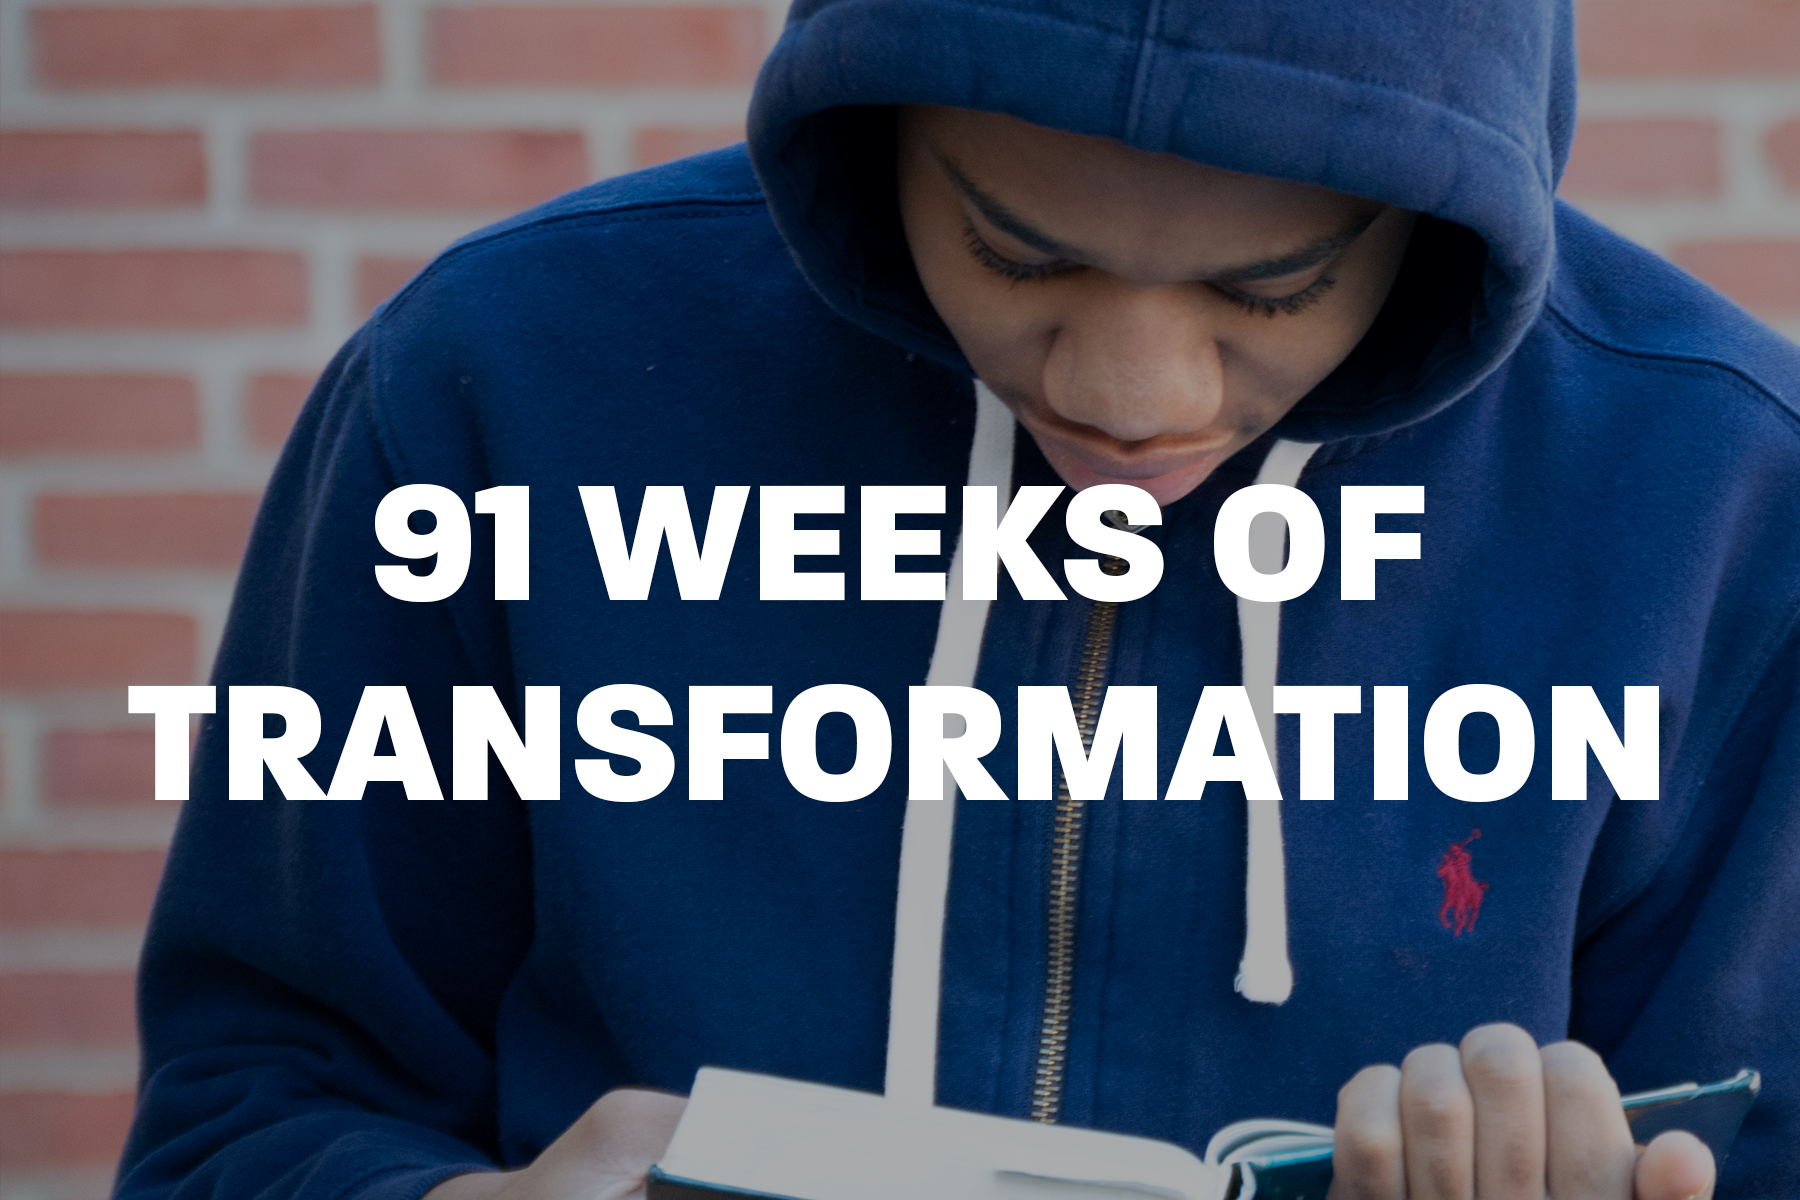 91 Weeks of Transformation